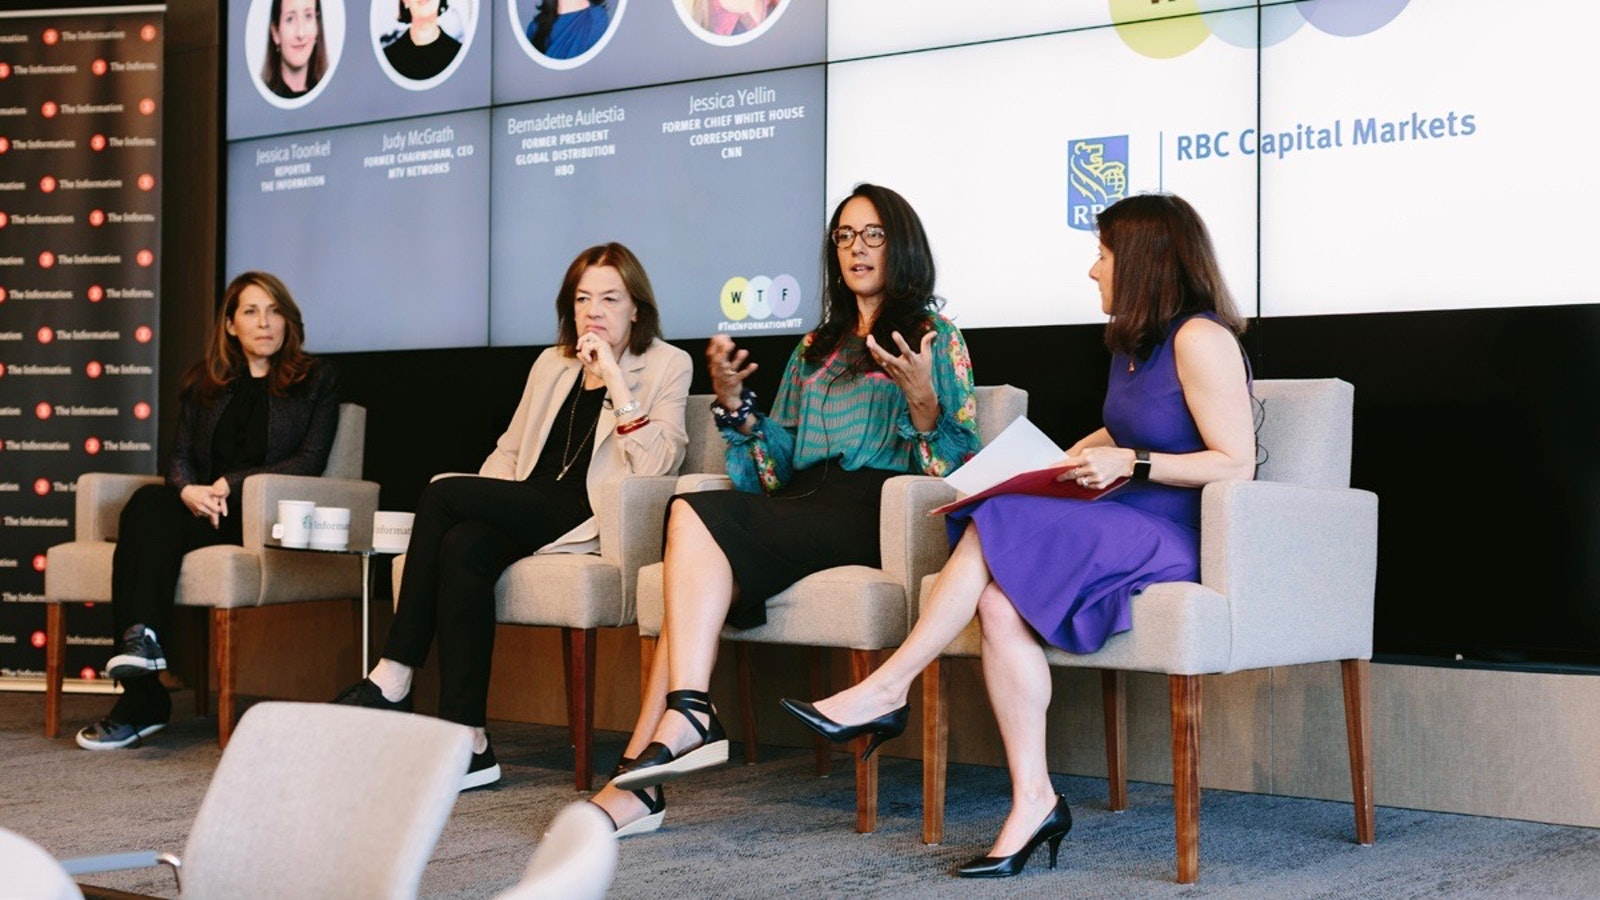 Jessica Yellin, Judy McGrath, Bernadette Aulestia and The Information's Jessica Toonkel at the Women in Tech, Media and Finance conference on Tuesday. Photo by Karen Obrist